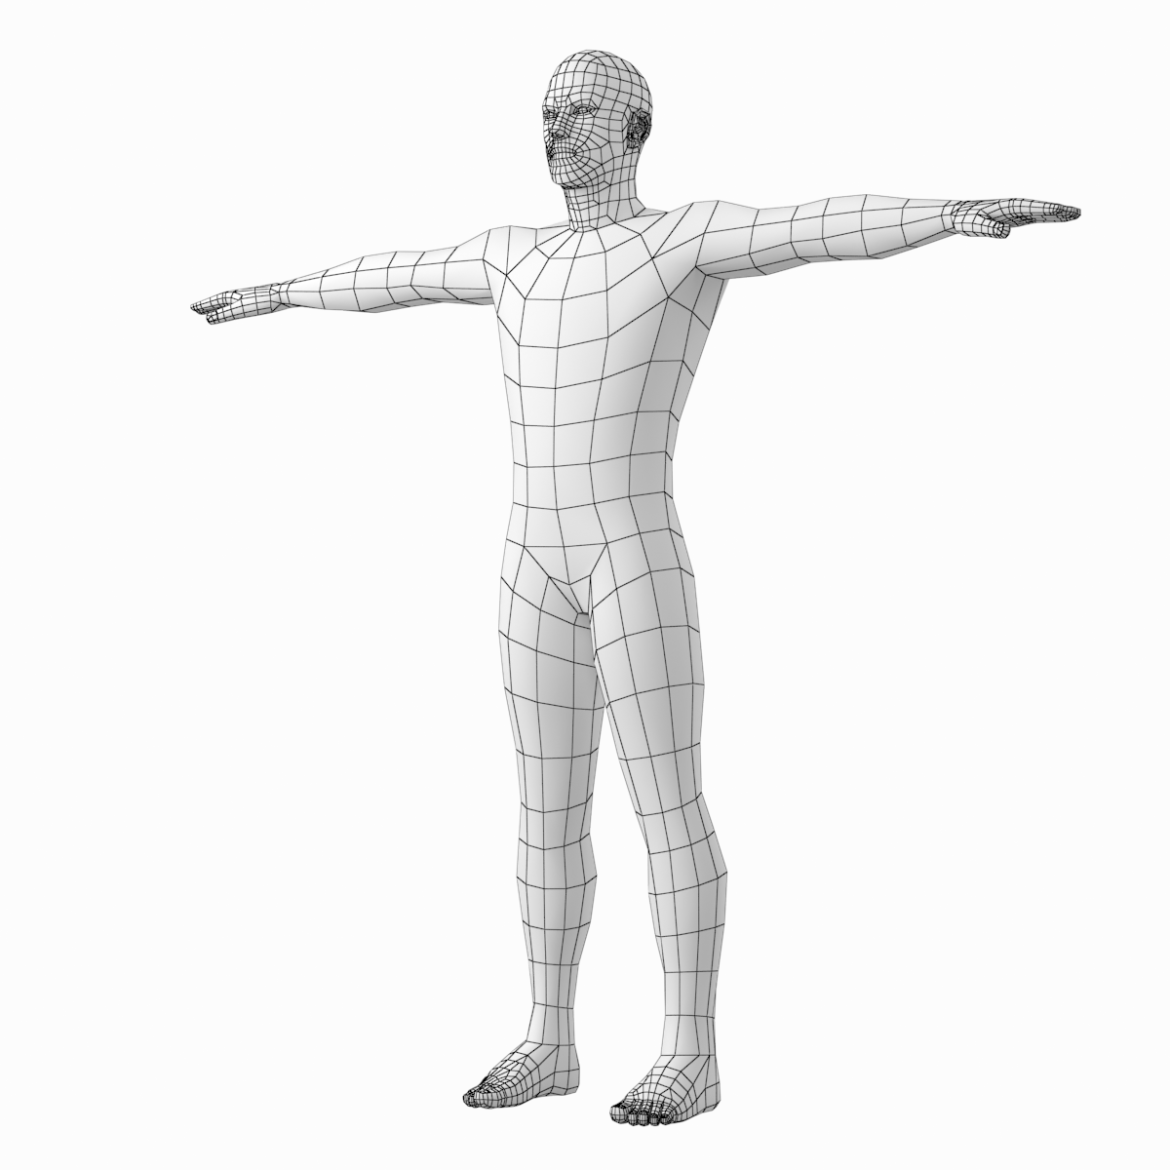 male and female base mesh in t-pose 3d model png stl obj ma mb max fbx dxf dwg dae c4d 3ds txt 305185